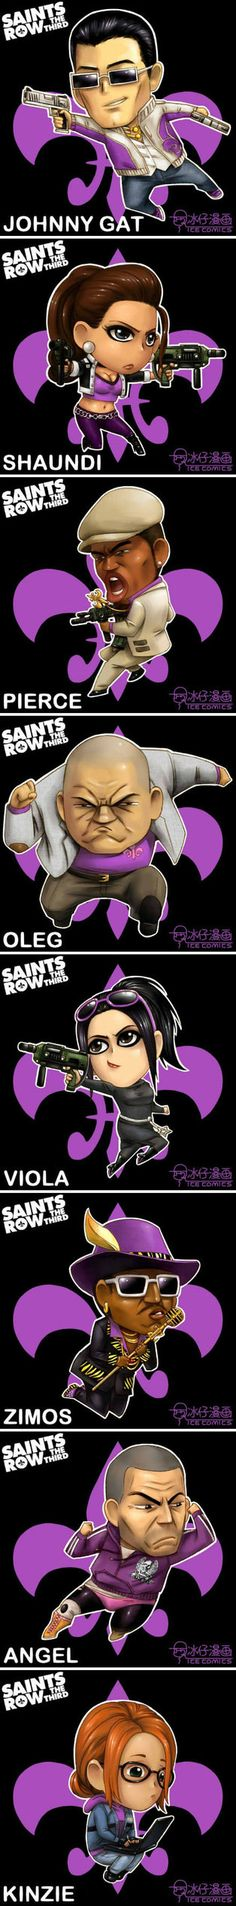 Saints Row 3-Q by jiayibingding